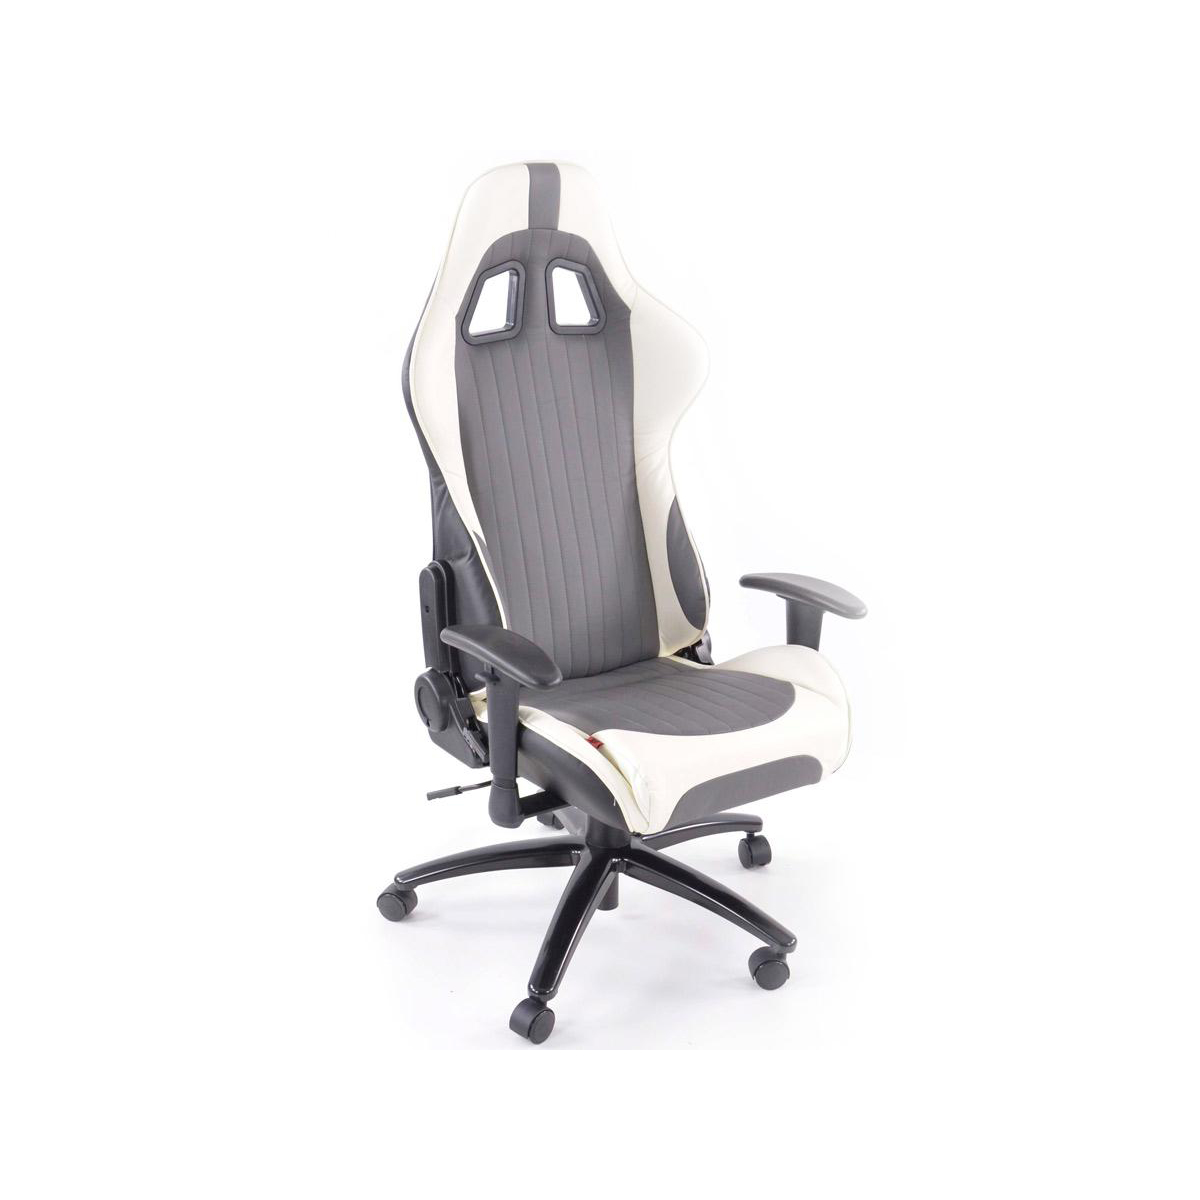 FK Automotive Racecar Executive Grey White Racing Office Chair GSM Sport Seats